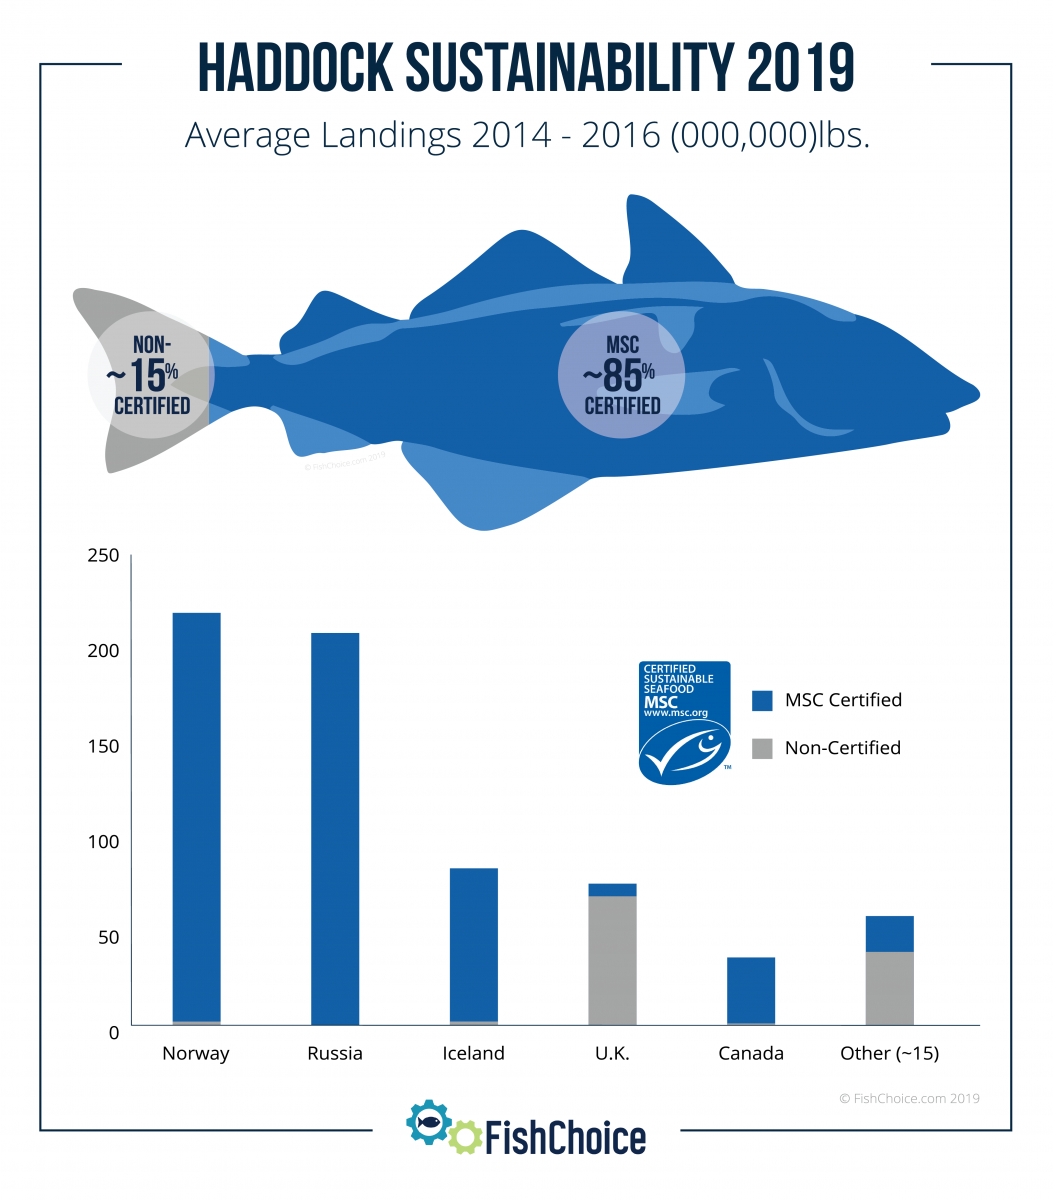 Haddock Sustainability